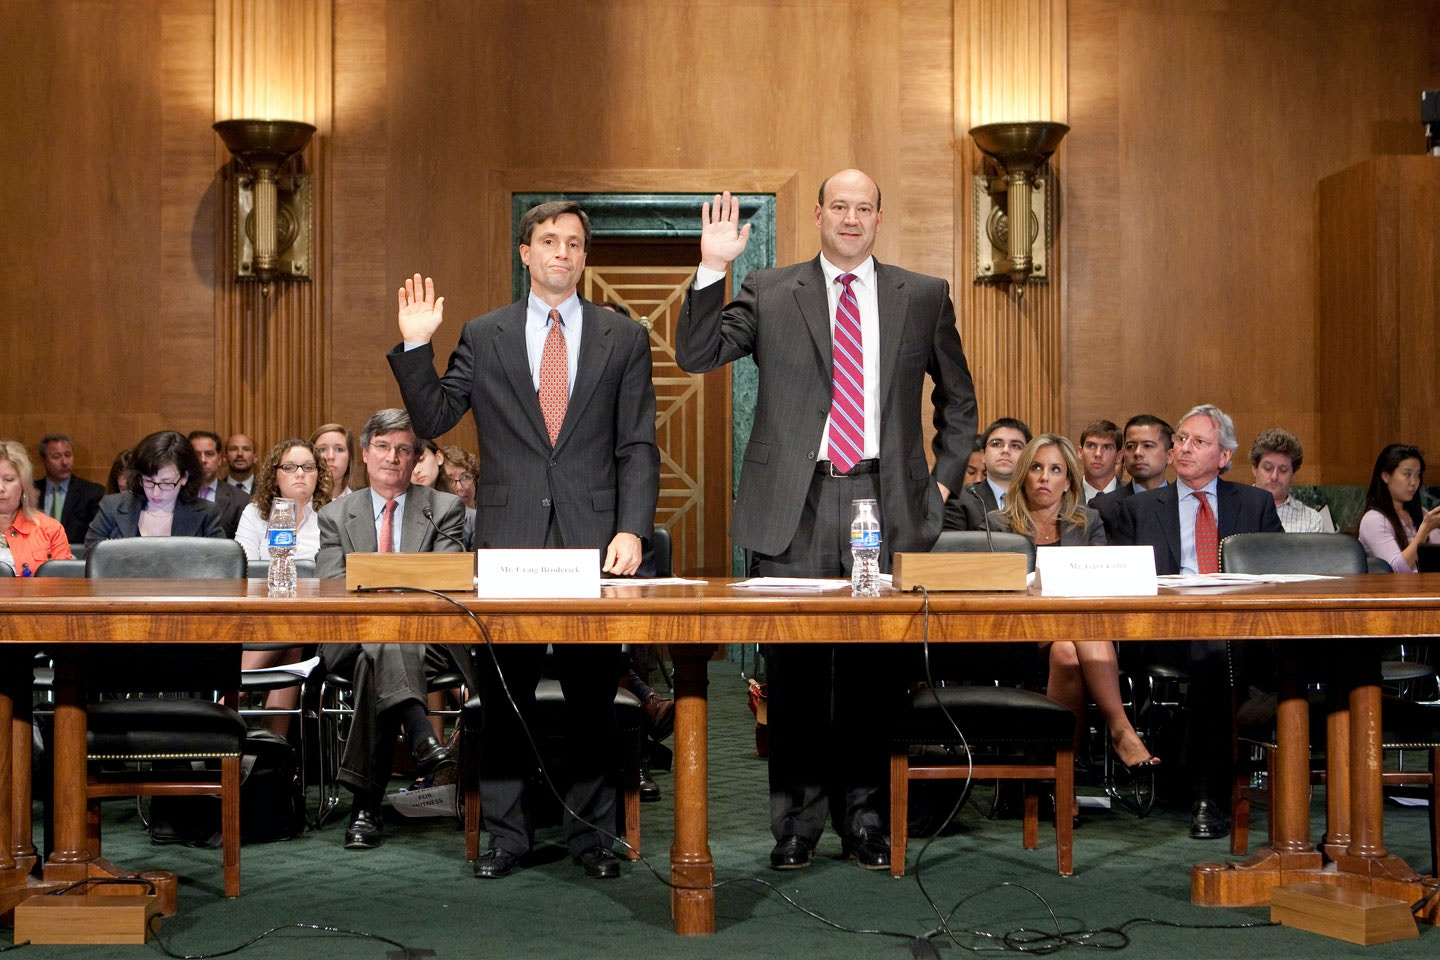 Gary Cohn, president and chief operating officer of Goldman Sachs Group Inc., right, and Craig Broderick, managing director and head of credit, market and operational risk with Goldman Sachs, are sowrn in during a Financial Crisis Inquiry Commission hearing on the role of derivatives in the financial crisis in Washington, D.C., U.S., on Wednesday, June 30, 2010. Goldman Sachs bought protection against a decline in just 1 percent of the mortgage backed securities the company underwrote since late 2006, according to Cohn. Photographer: Andrew Harrer/Bloomberg via Getty Images